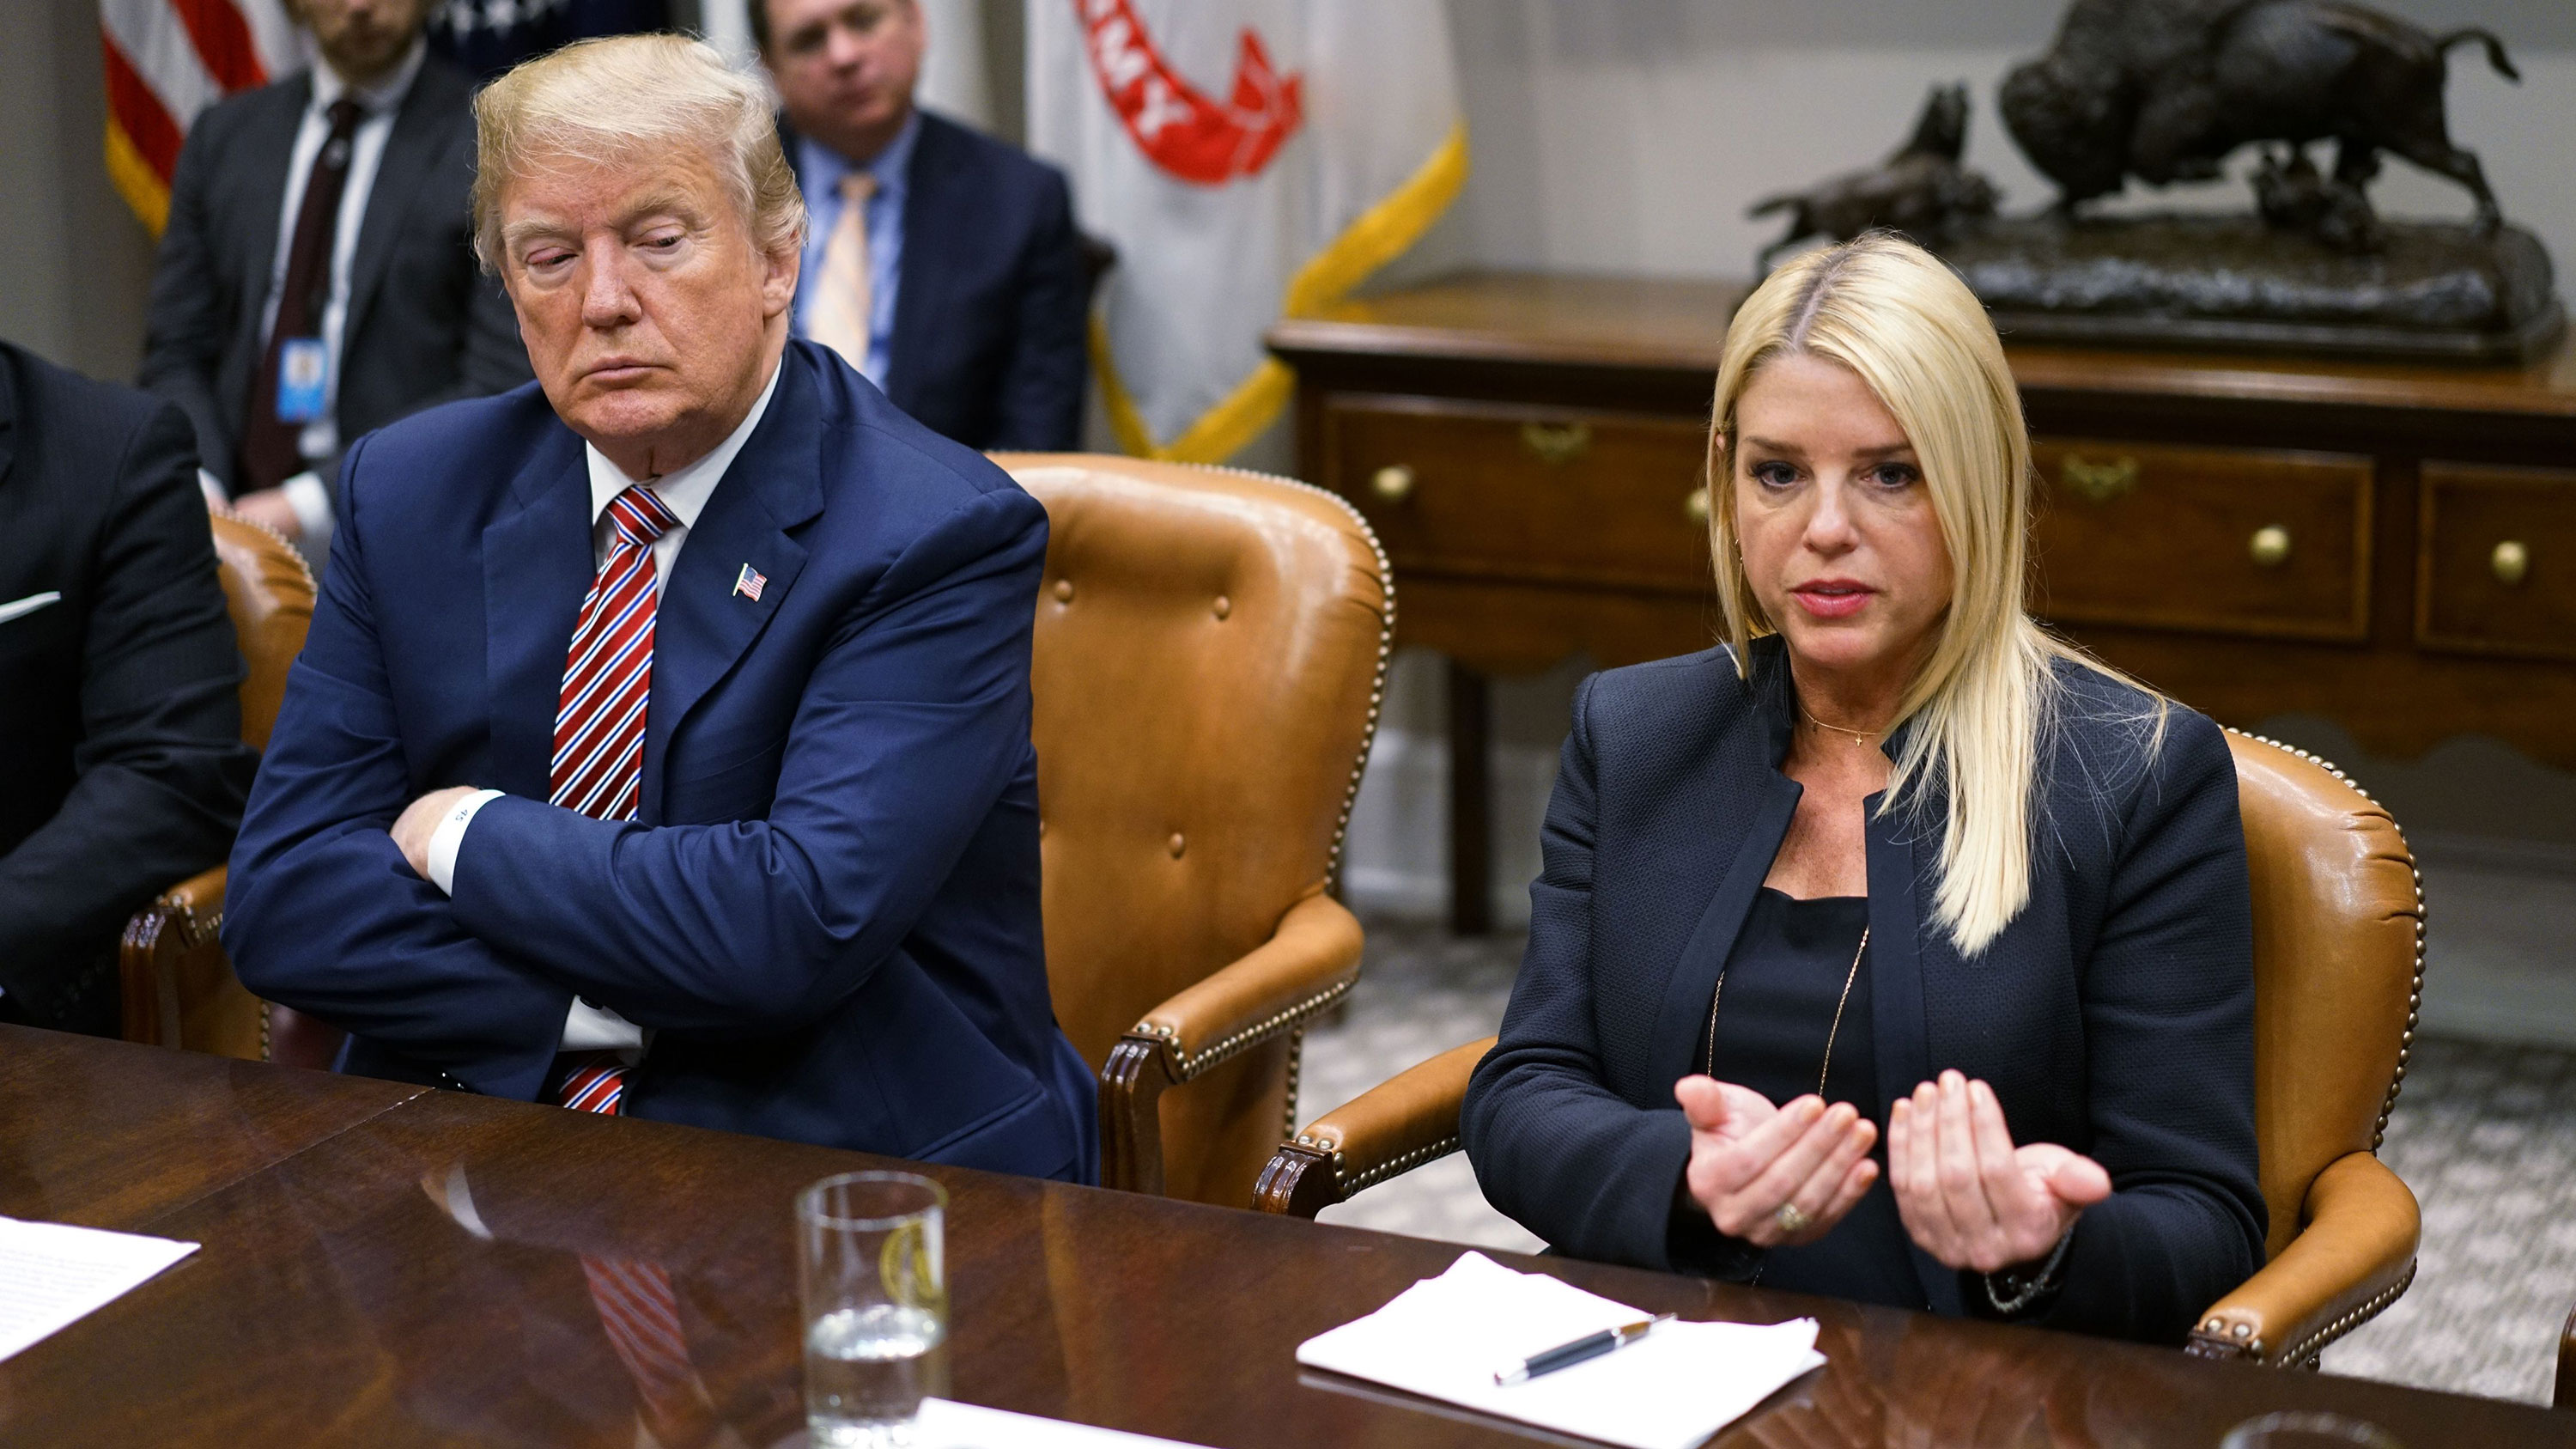 Pam Bondi speaks during a meeting with President Trump in February 2018.